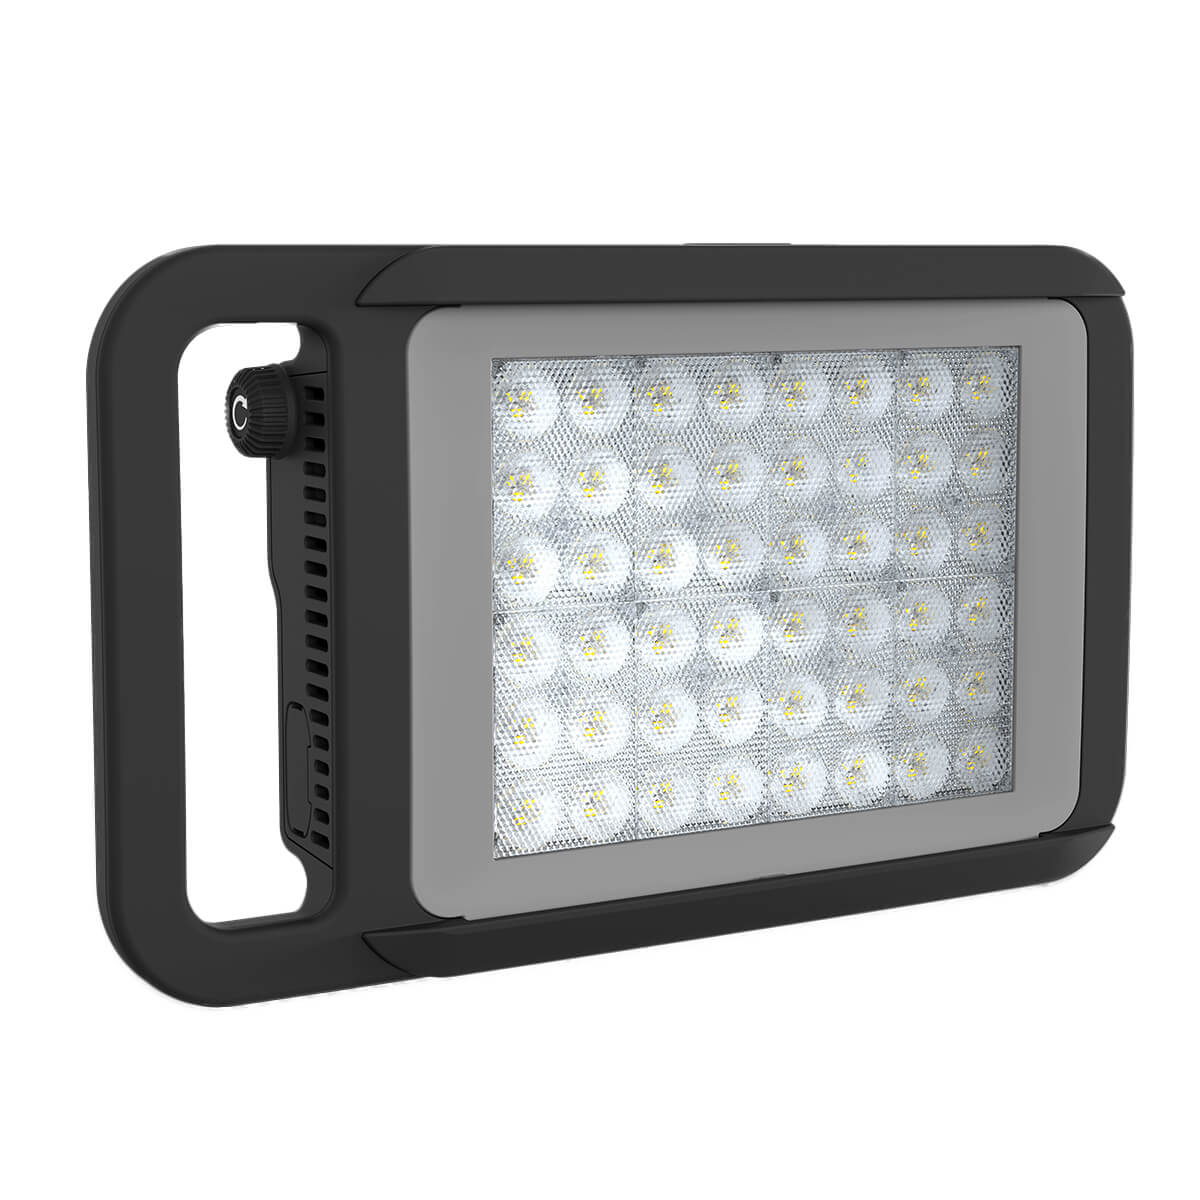 Litepanels Lykos Daylight LED Fixture